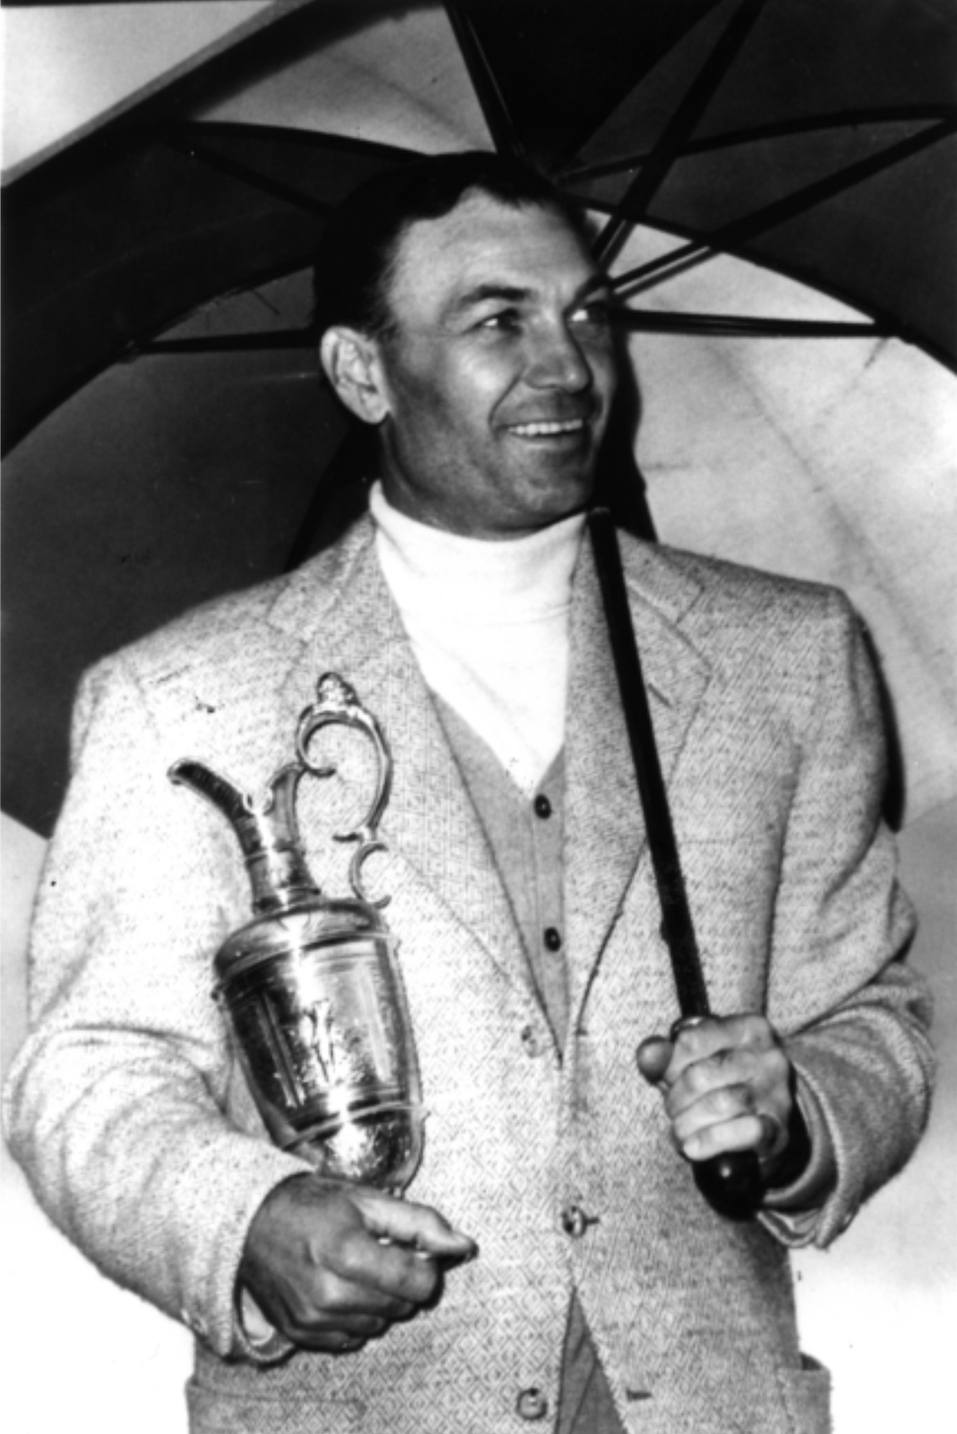 Ben Hogan of the USA with the Claret Jug after victory in the British Open